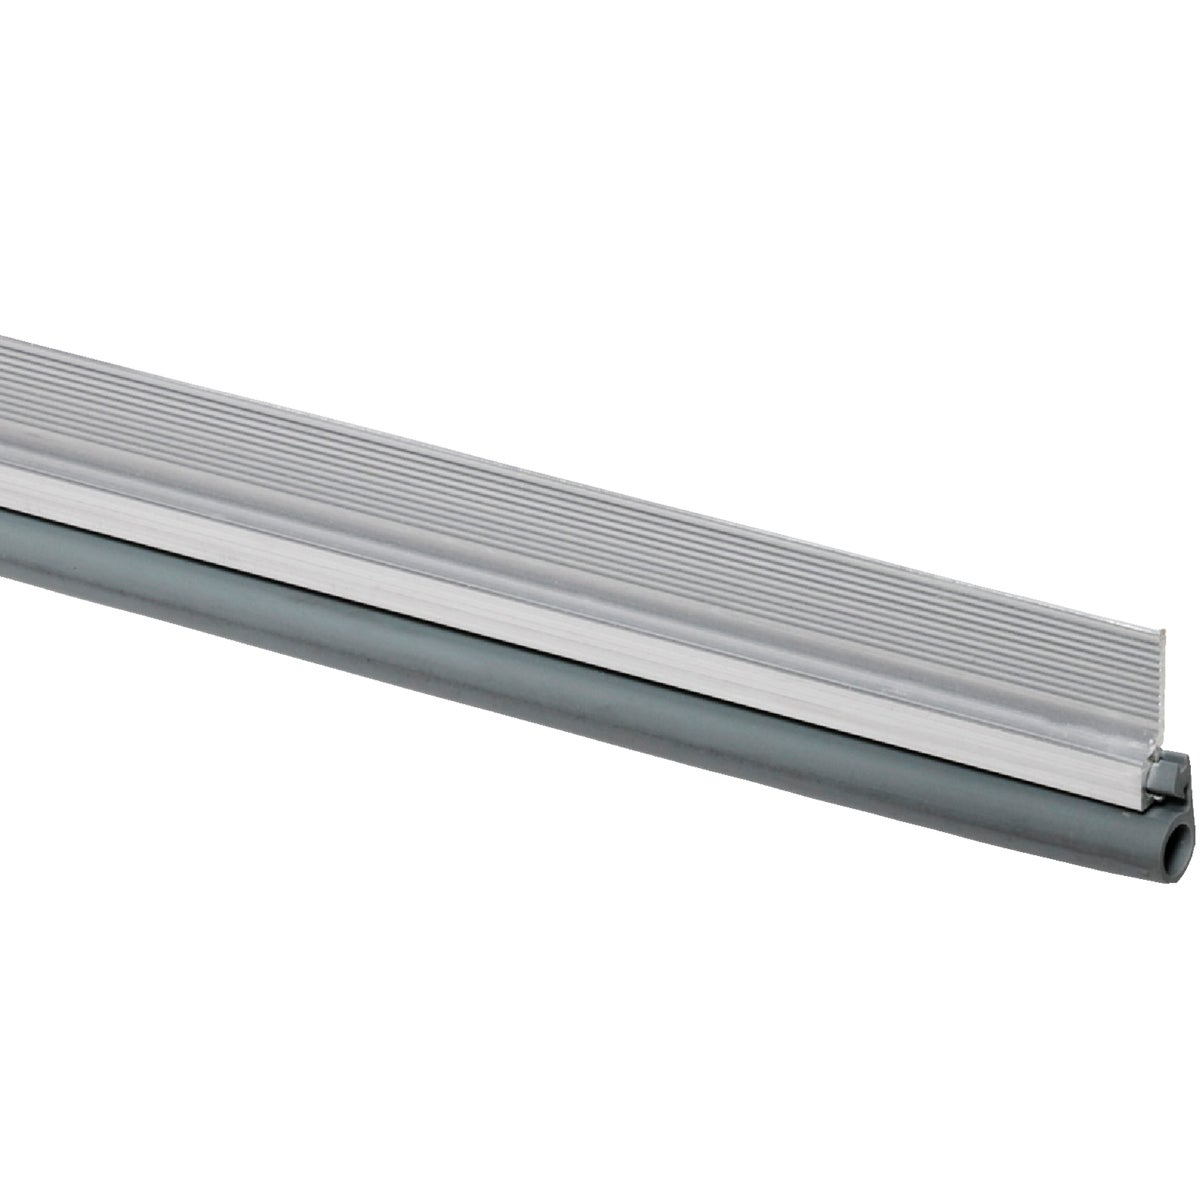 "42"" SLV DOOR JAMB SEAL - 43303 by M D Building Prod"